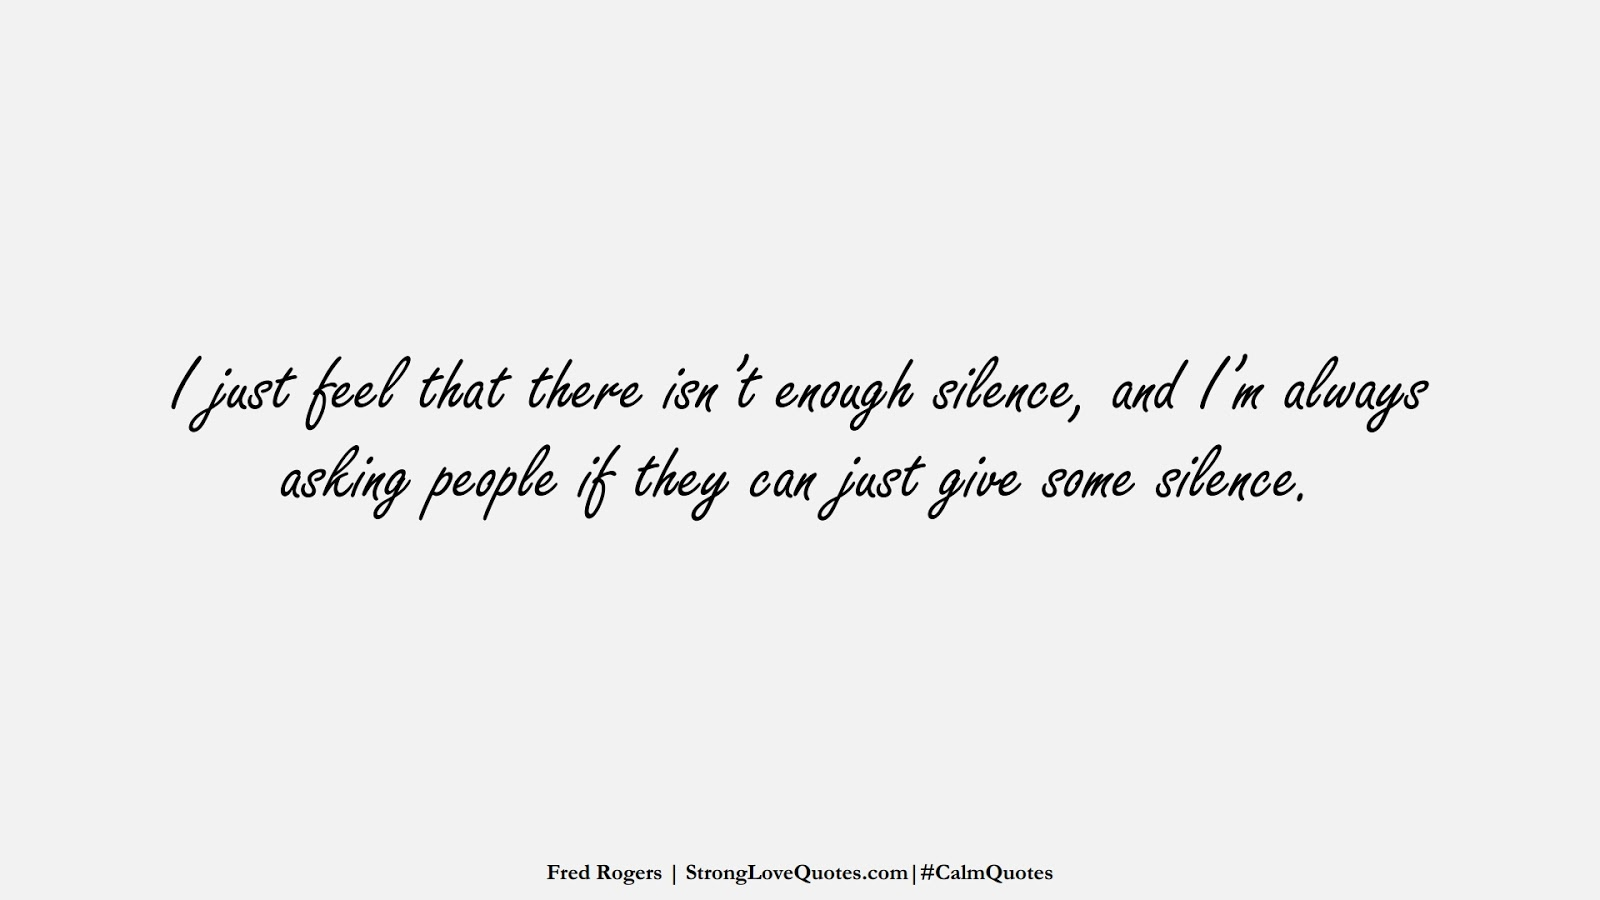 I just feel that there isn't enough silence, and I'm always asking people if they can just give some silence. (Fred Rogers);  #CalmQuotes